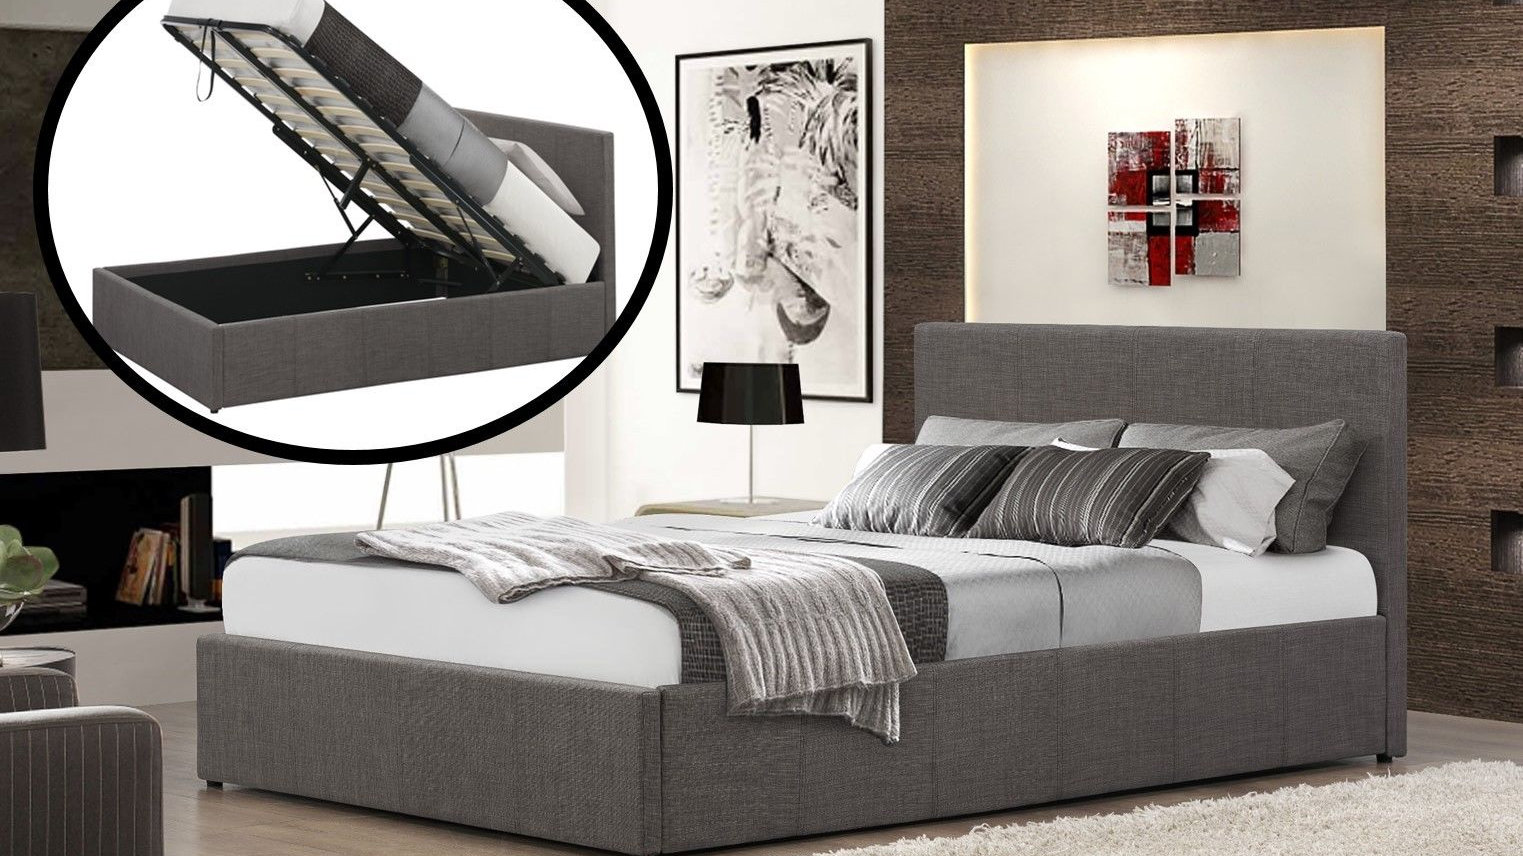 Tremendous King Size Grey Fabric Gas Lift Ottoman Bed On Sale Now Ibusinesslaw Wood Chair Design Ideas Ibusinesslaworg